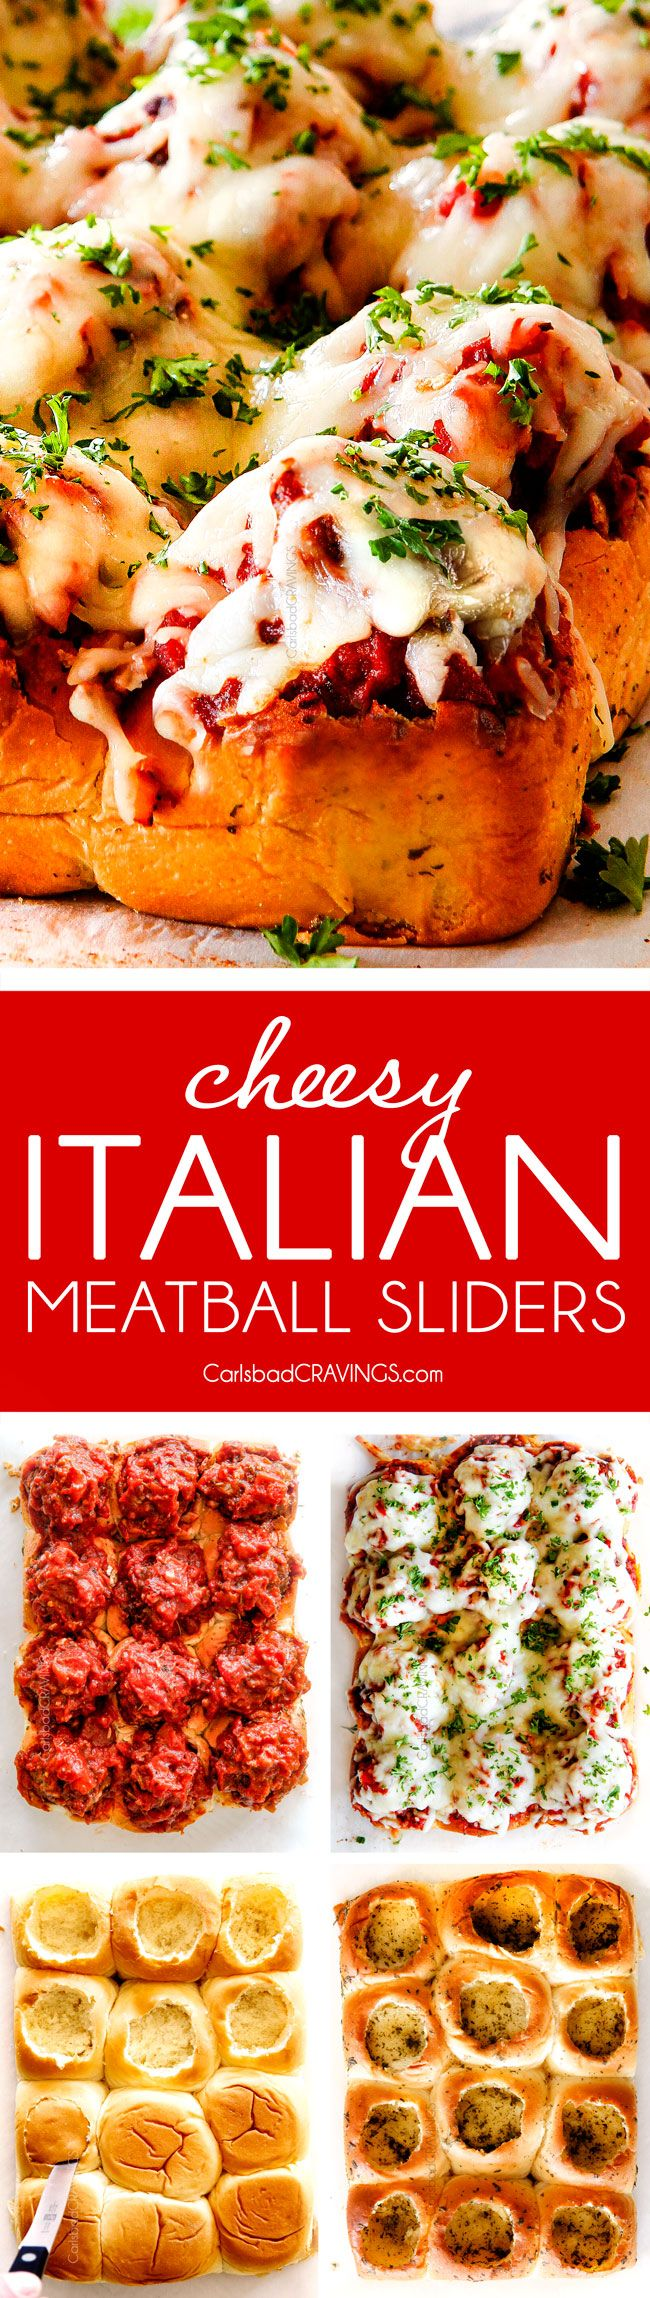 These Cheesy Italian Meatball Sliders are my favorite party food ever and my family loves them for dinner!  The meatballs are the BEST (so tender and juicy!) and the marinara is amazing and I love how they are individual sliders instead of meatball subs!  I can't recommend these enough!